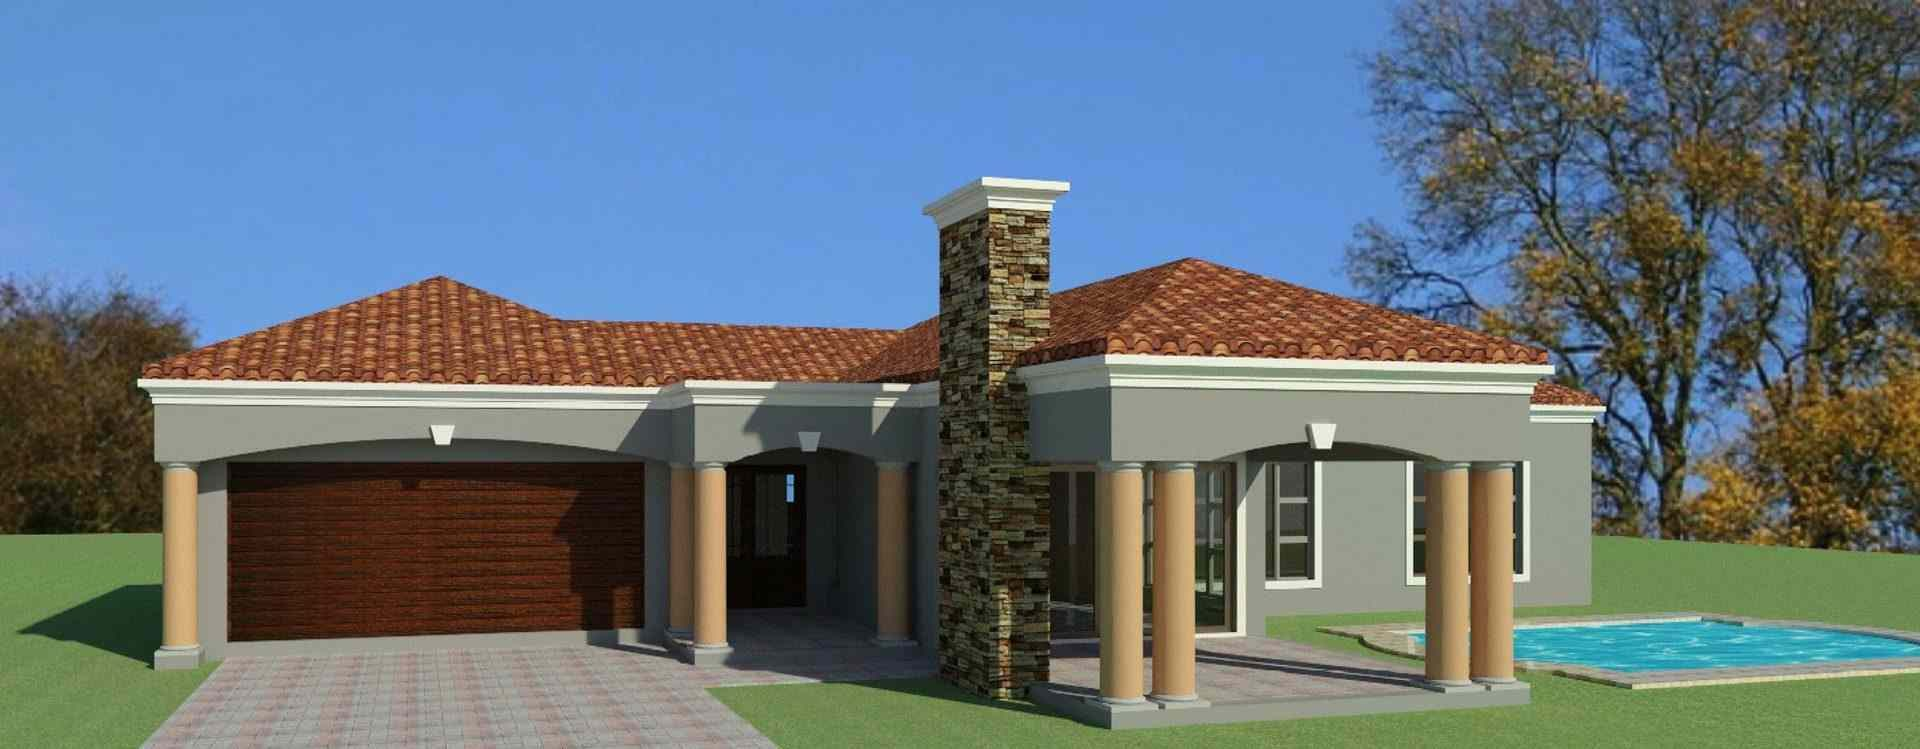 House Plans For Sale | Buy South African House Designs ...